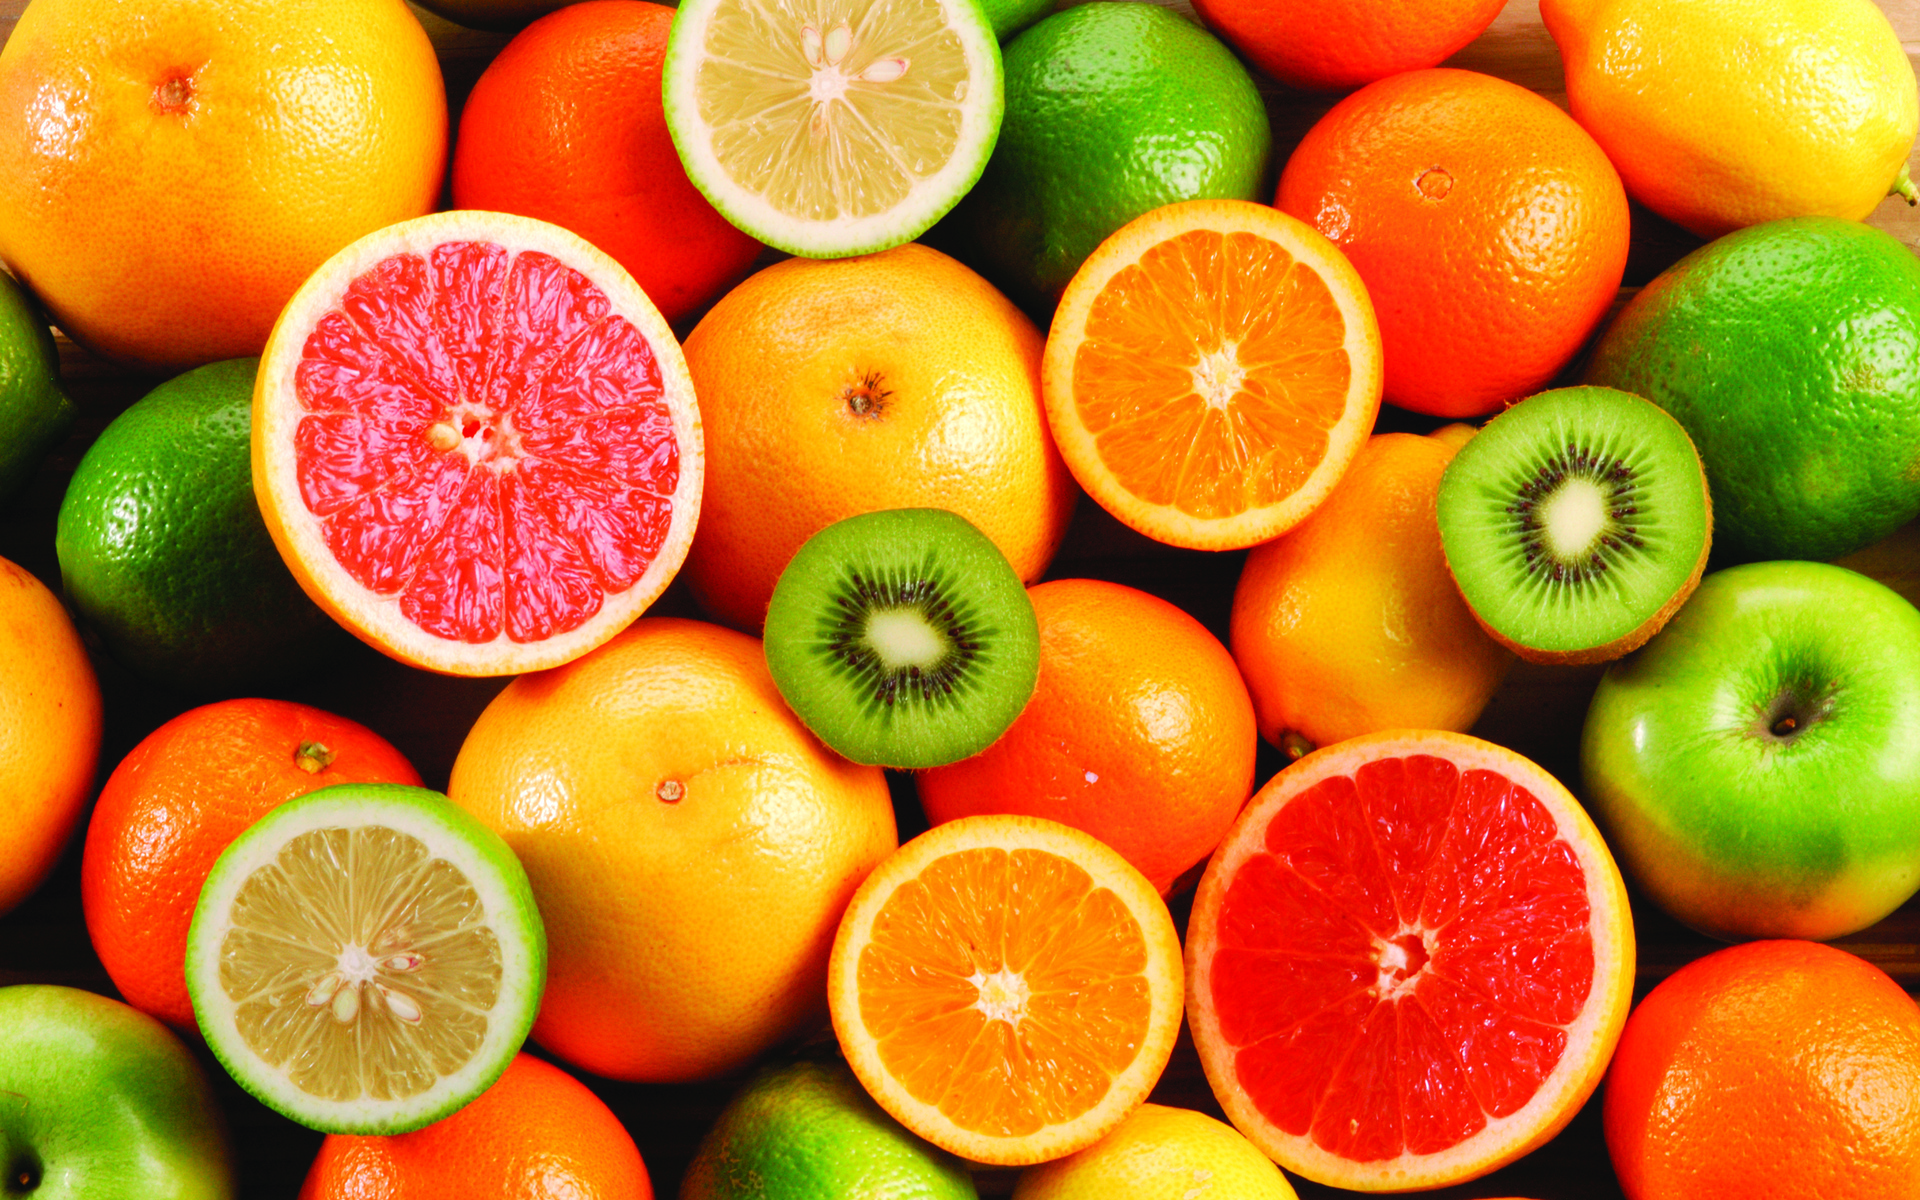 All Fresh Fruit Wallpaper Image 1920x1200